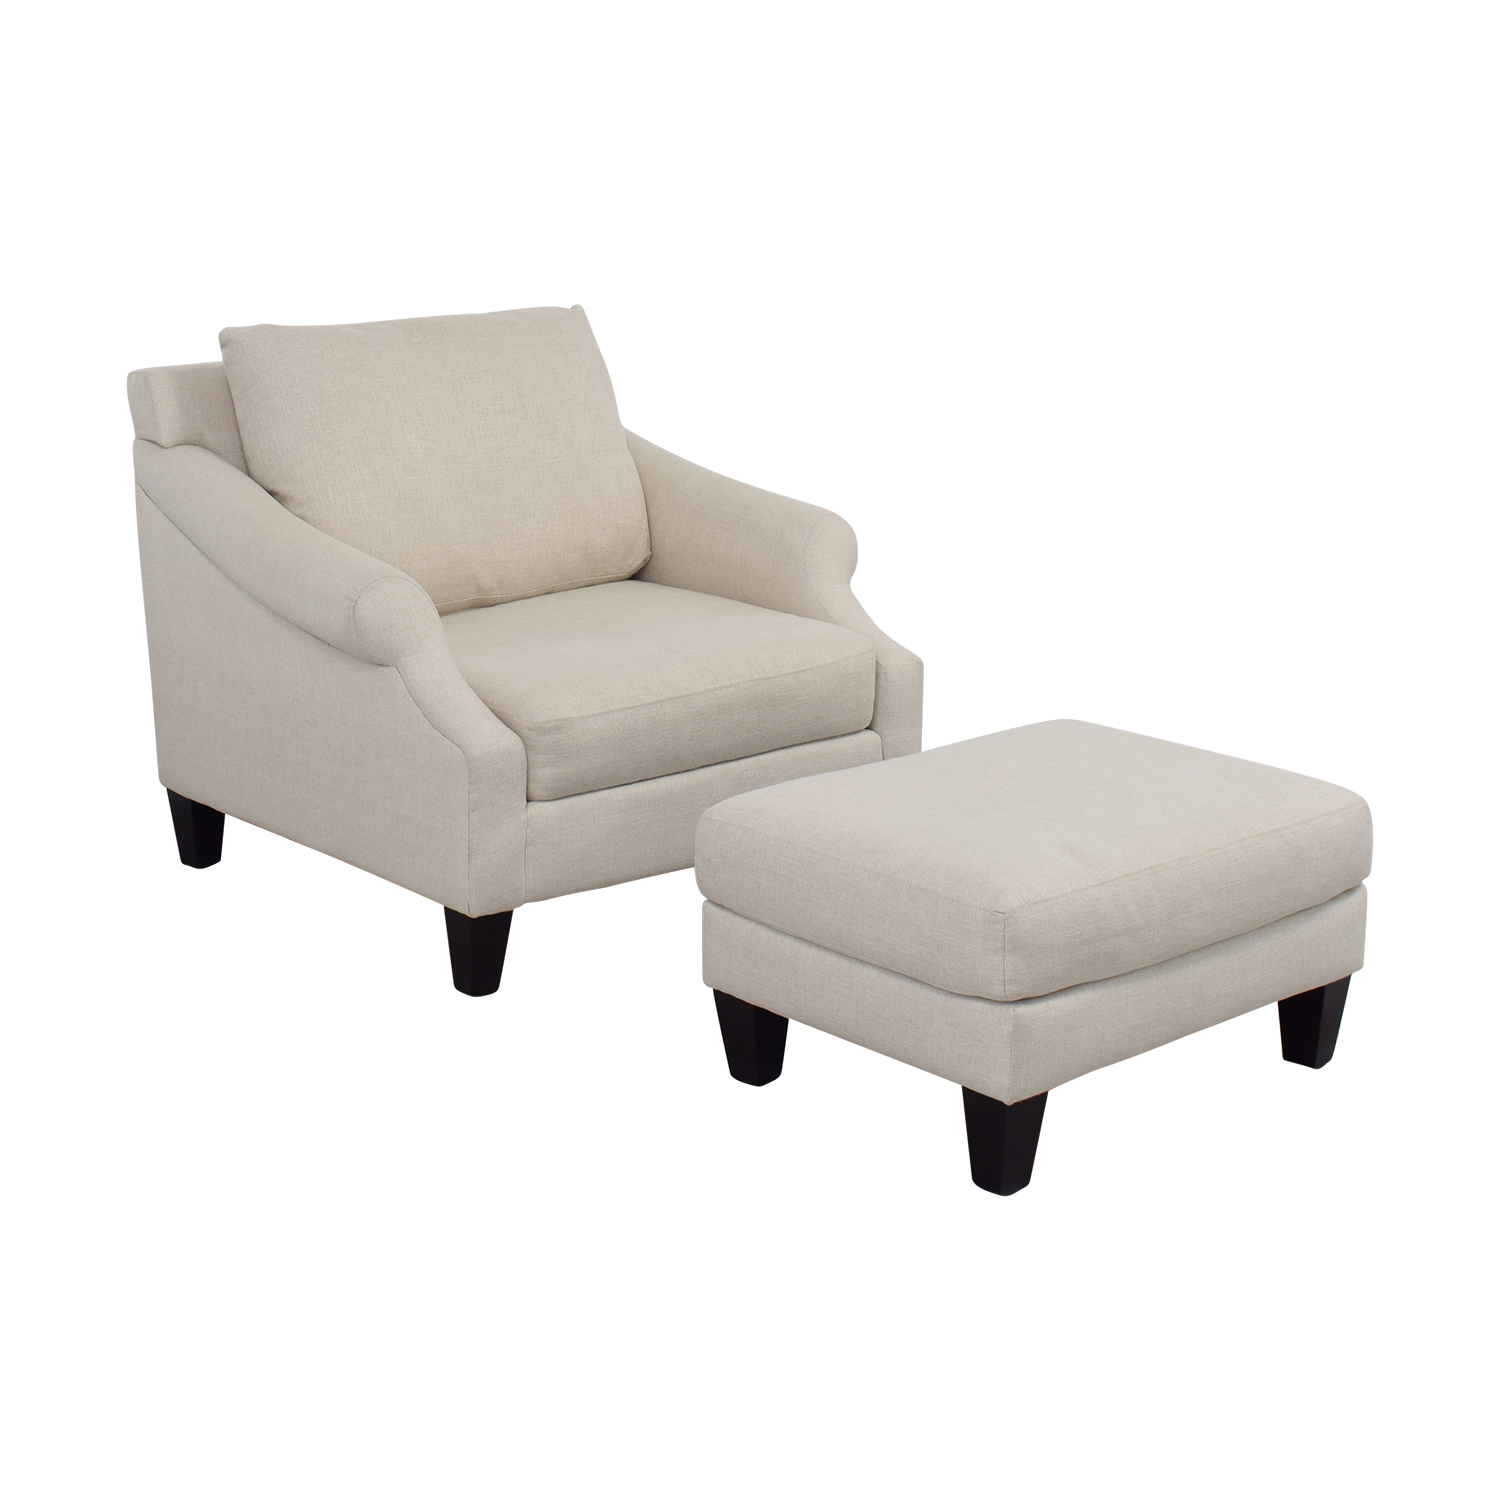 Raymour & Flanigan Beige Love Chair and Ottoman Raymour & Flanigan